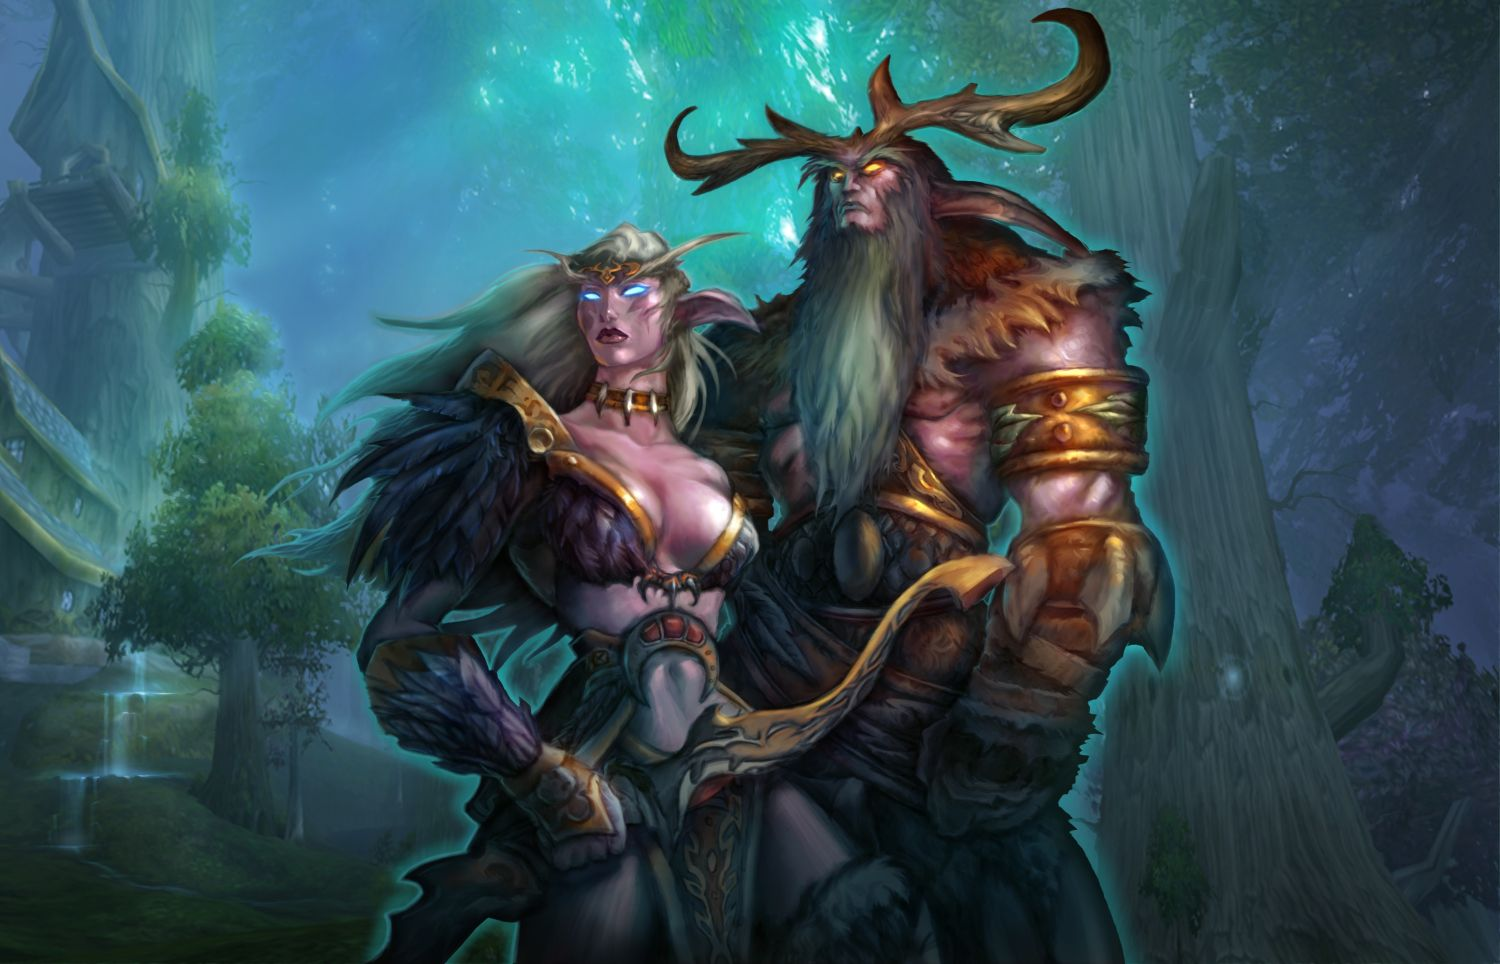 WoW Druid Artwork